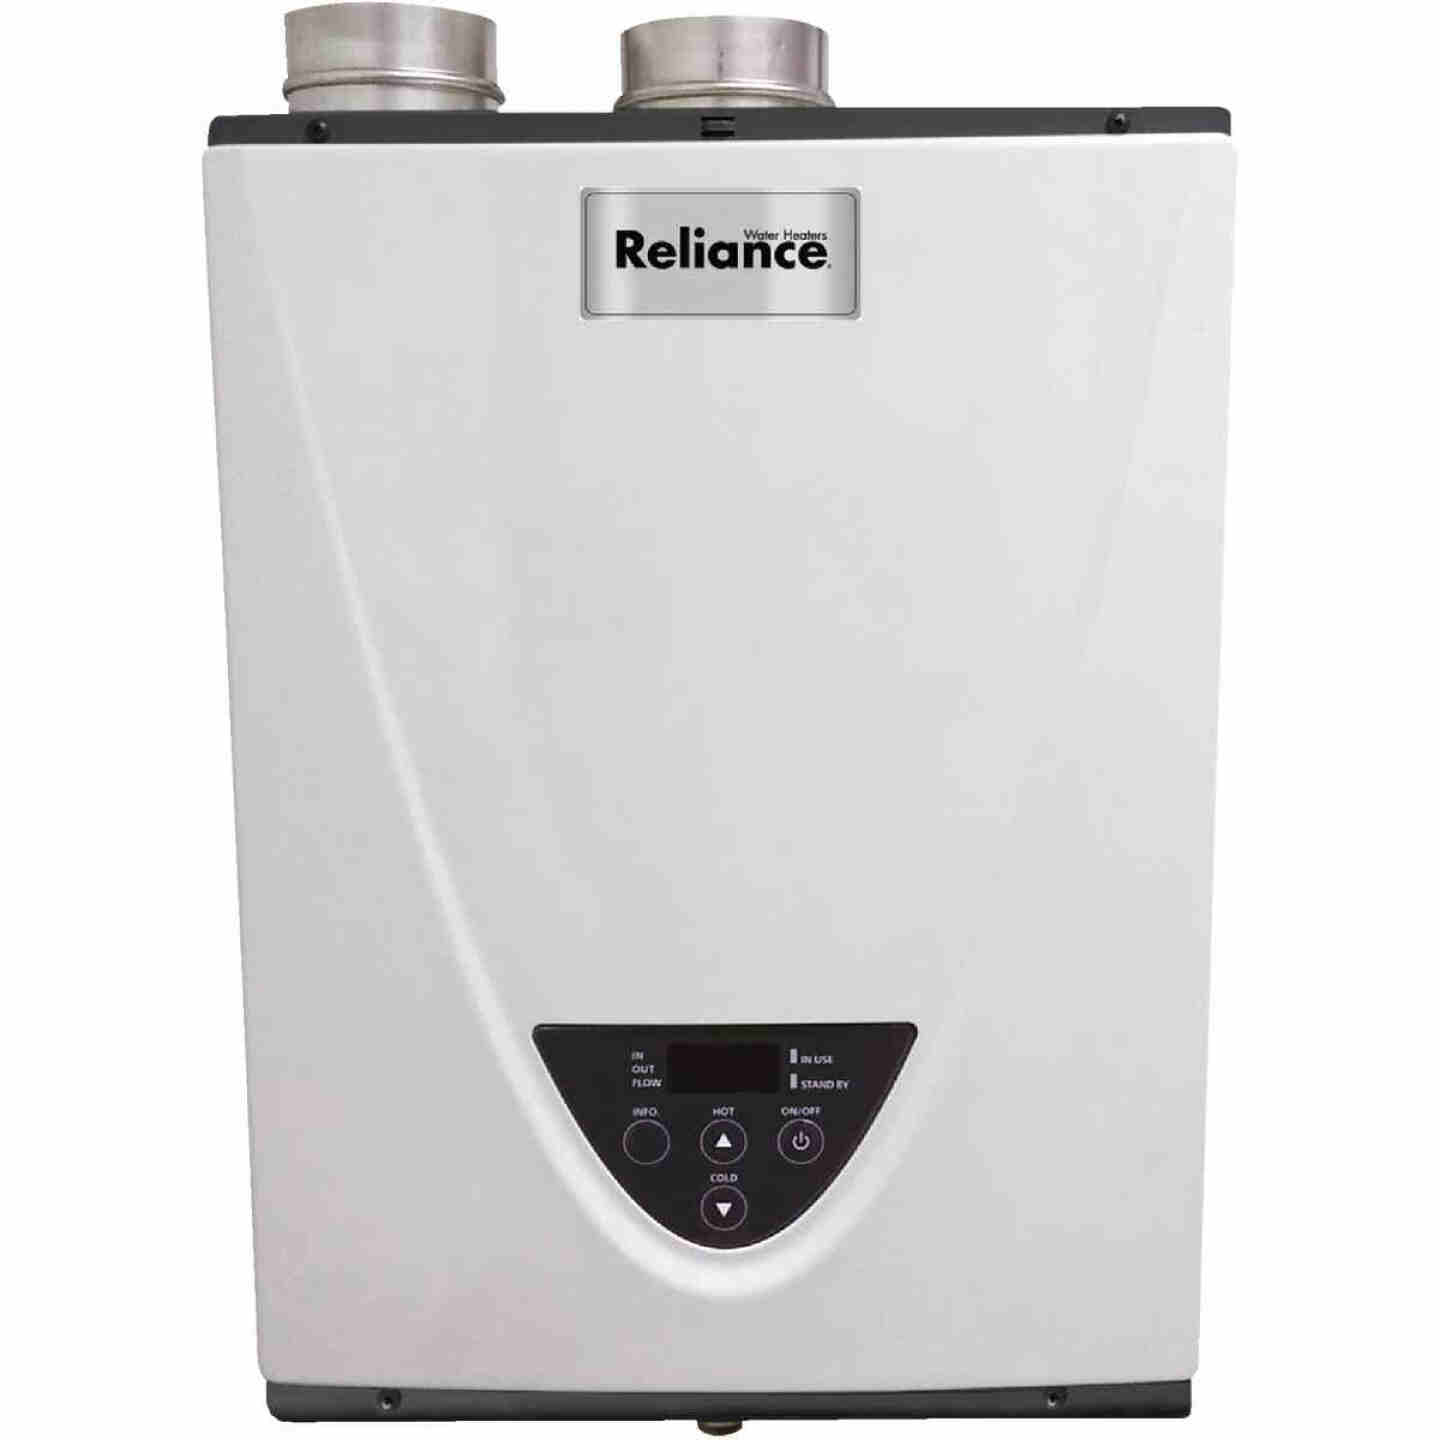 Reliance Series TS-540-GIH Natural Gas Tankless Water Heater Image 1